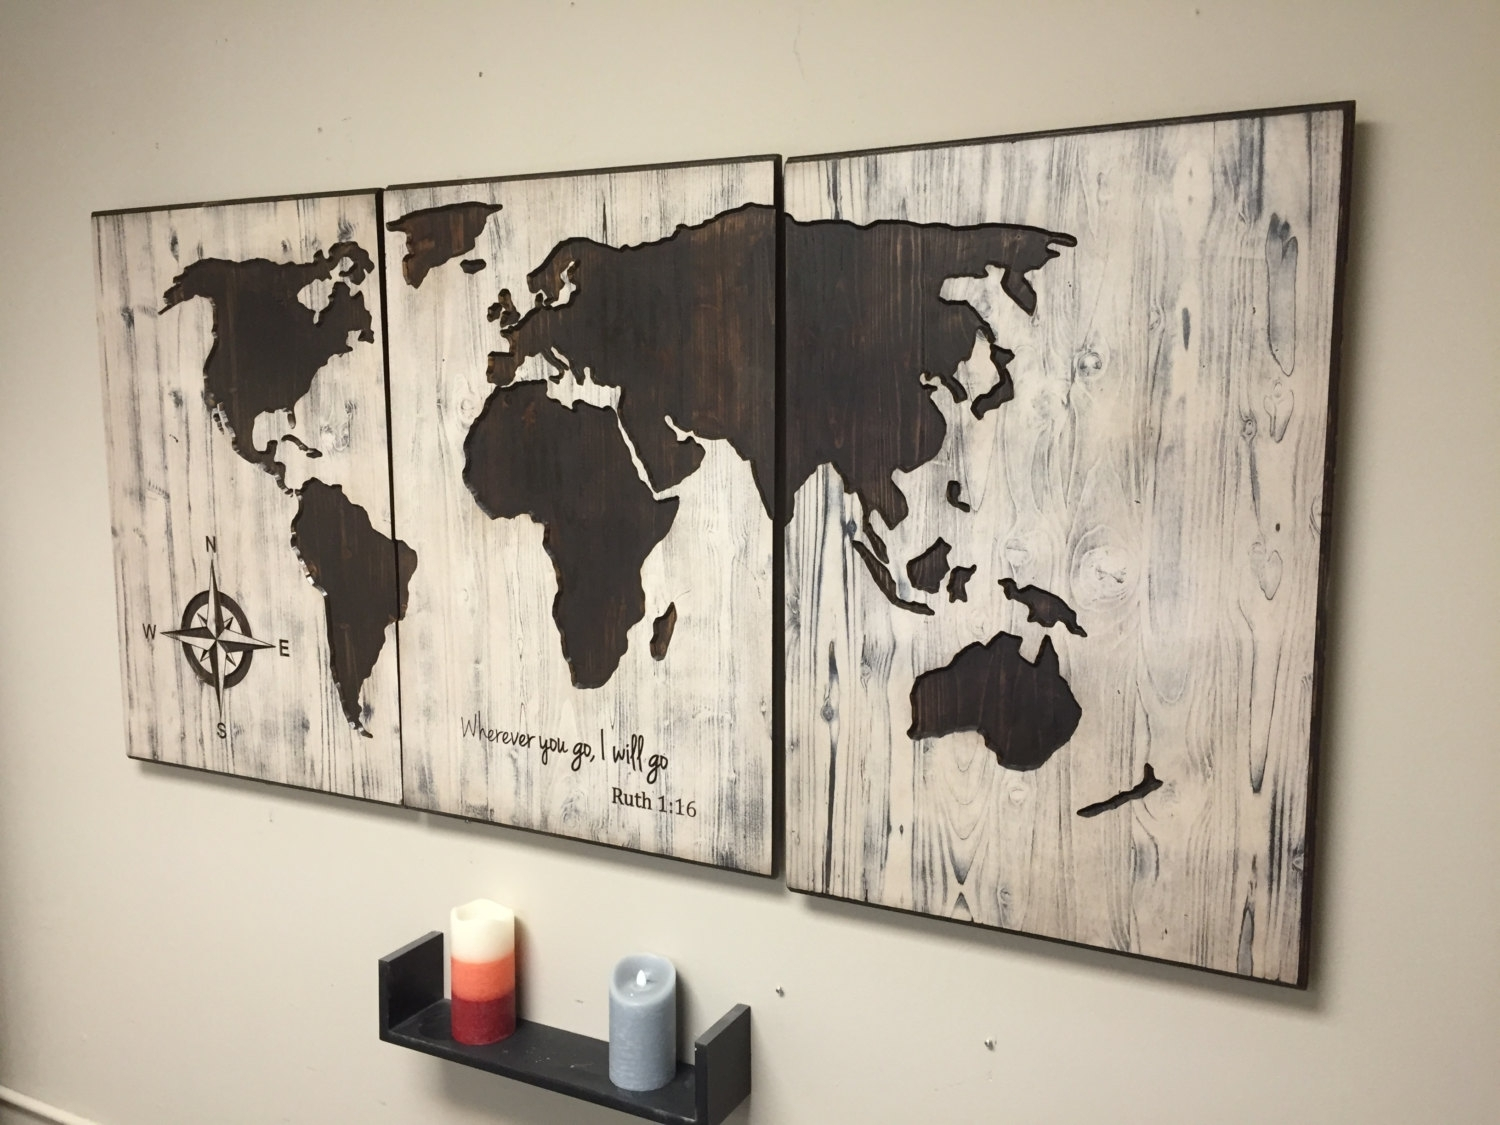 World Map Reclaimed Barn Door Wood String Art Wall Decor 39 X 29 And With Regard To String Map Wall Art (View 19 of 20)